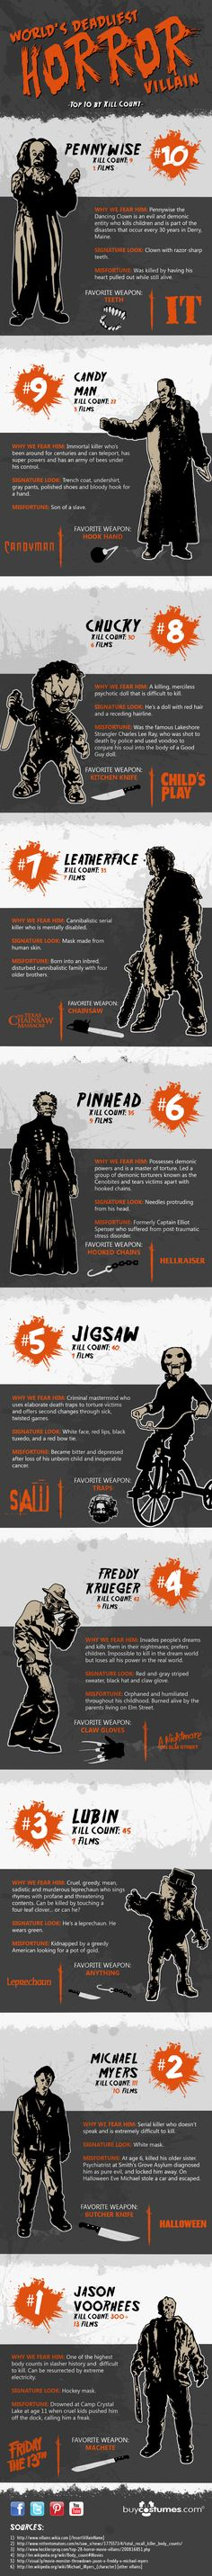 Top 10 Worlds Deadliest Horror Movie Villains | Visual.ly